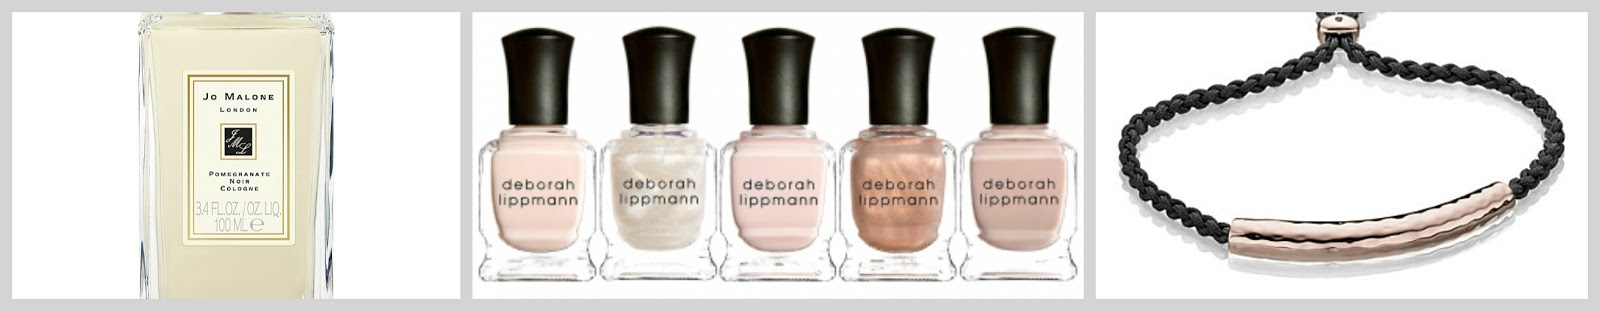 christmas gift guide for her jo malone perfume deborah lippmann nail polish set monica vinader rose gold friendship bracelet